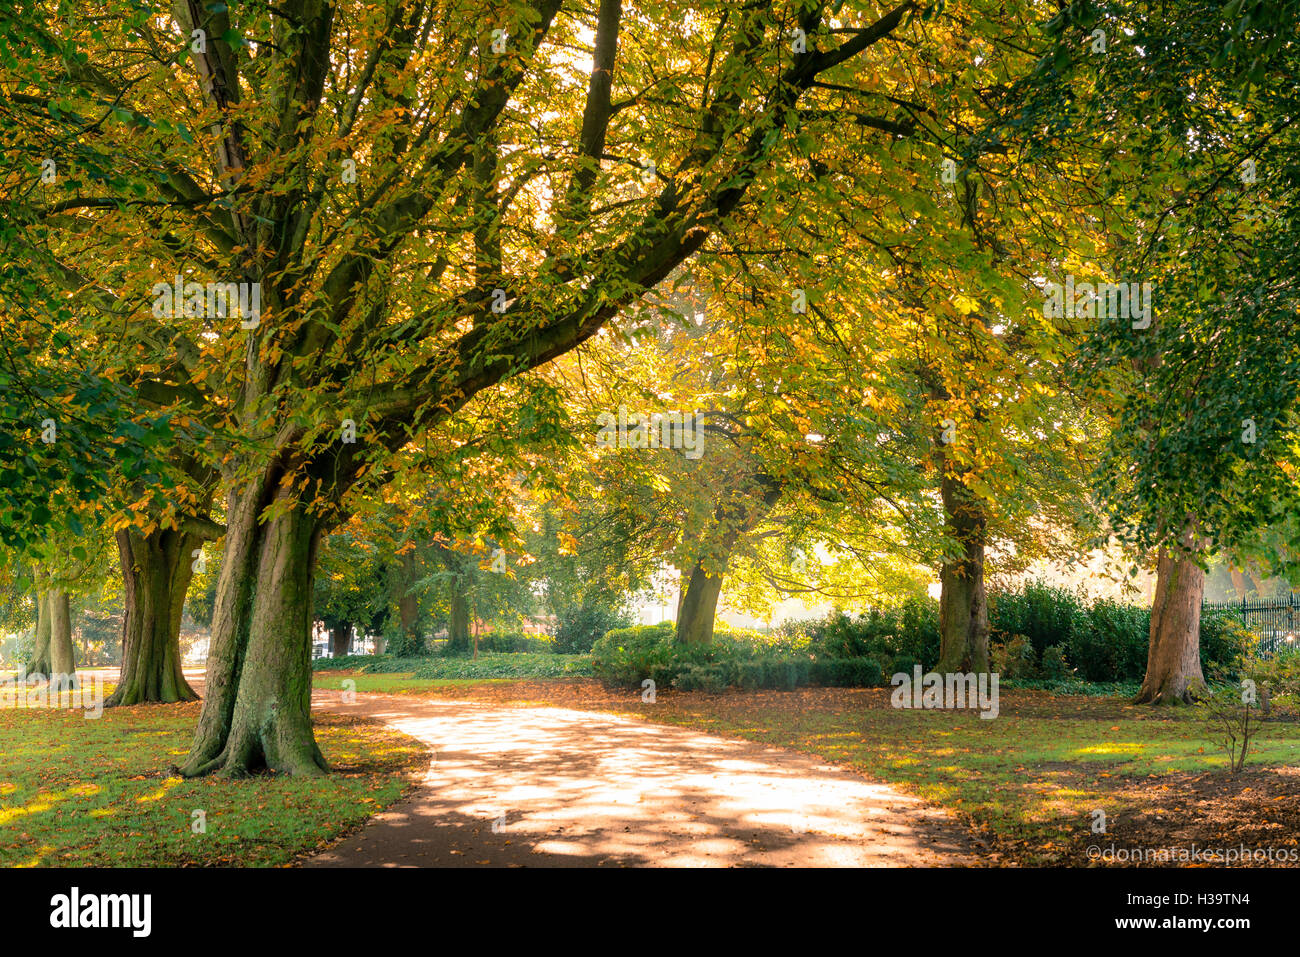 Autumn Trees at West Park Wolverhampton, England - Stock Image